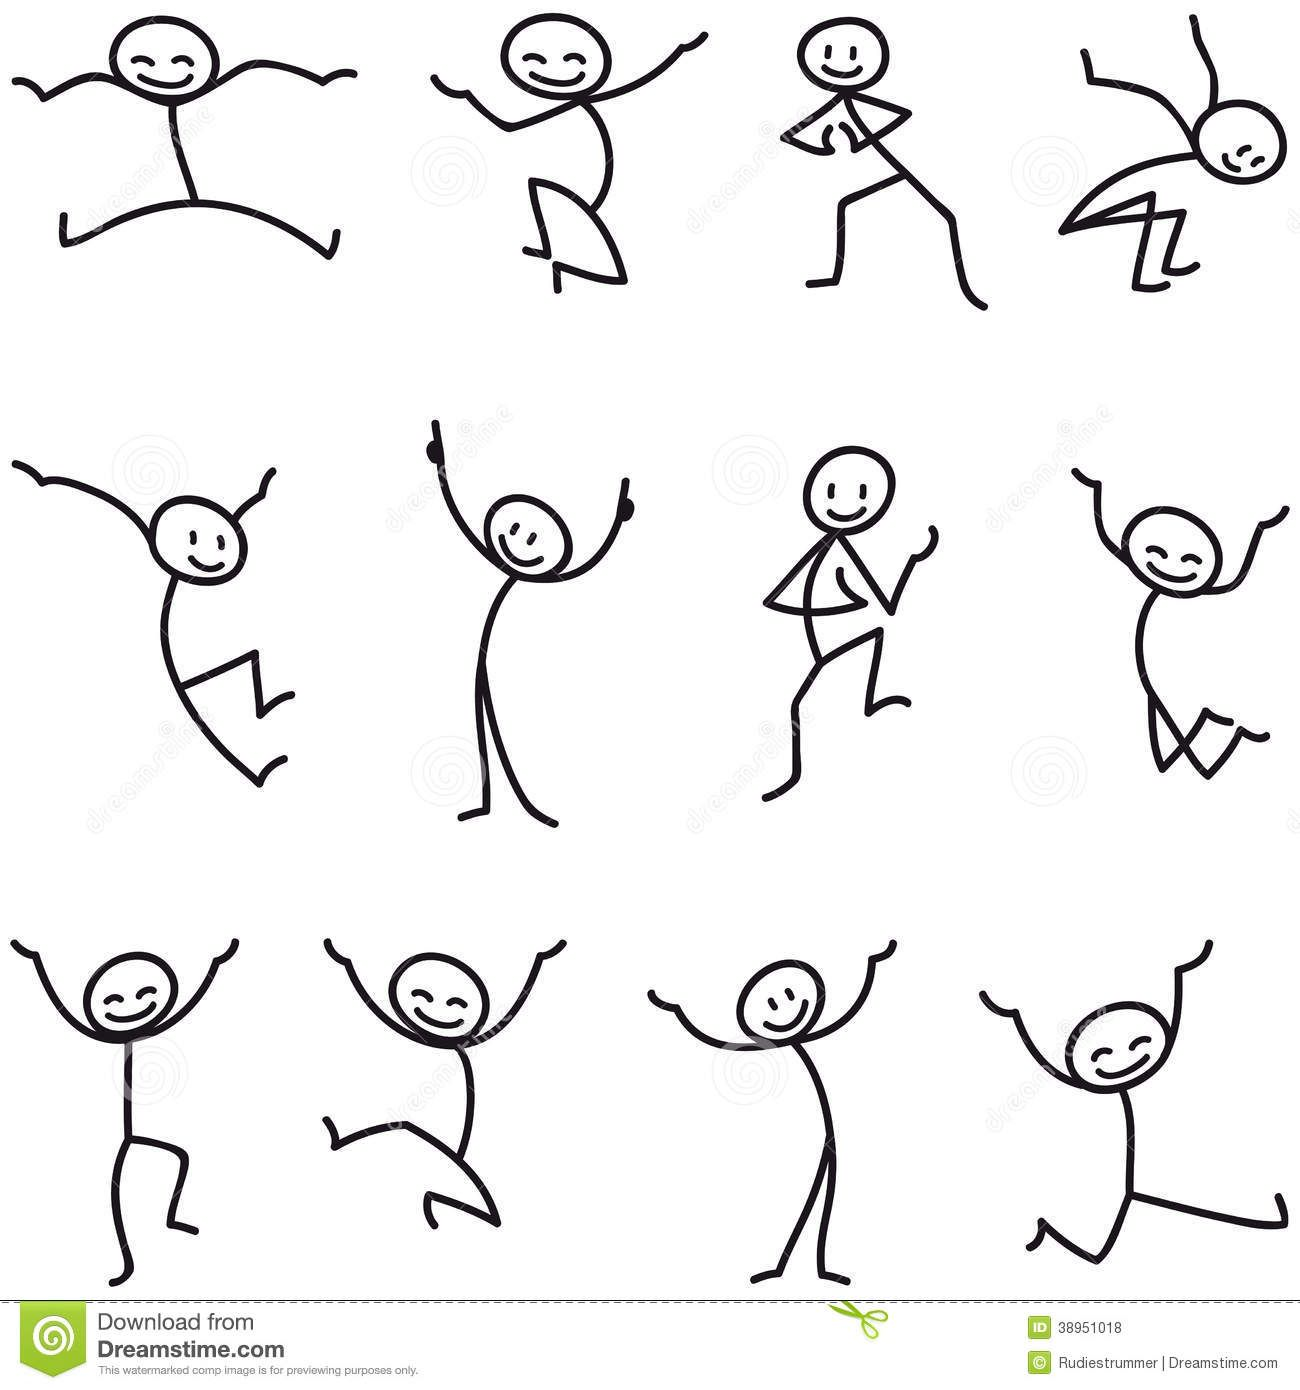 Stick Figure Jumping Stock Photos 89 Stick Figure Jumping Stock Dibujos Con Figuras Dibujos Fáciles Dibujos Sencillos